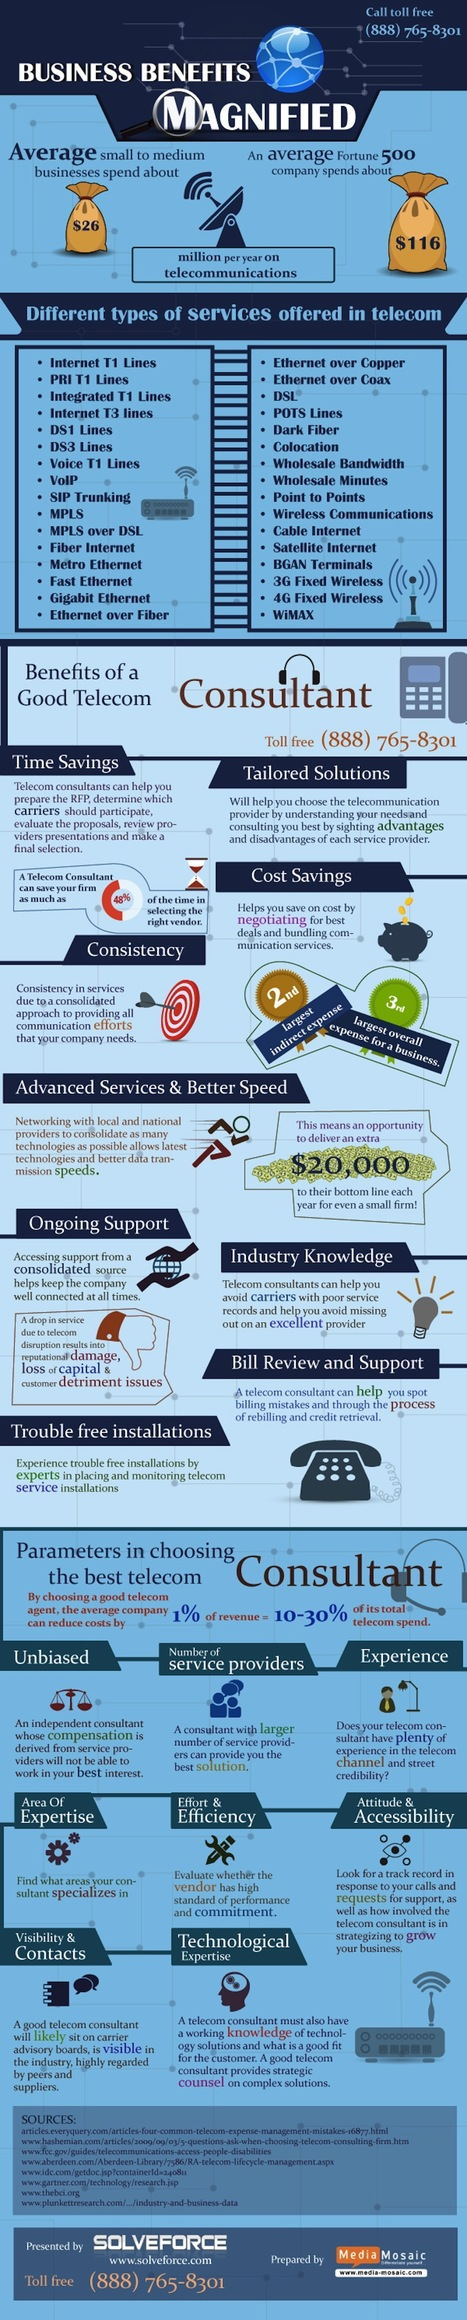 Business Benefits Magnified Telecommunications [Infographic]   Telecommunications   Scoop.it